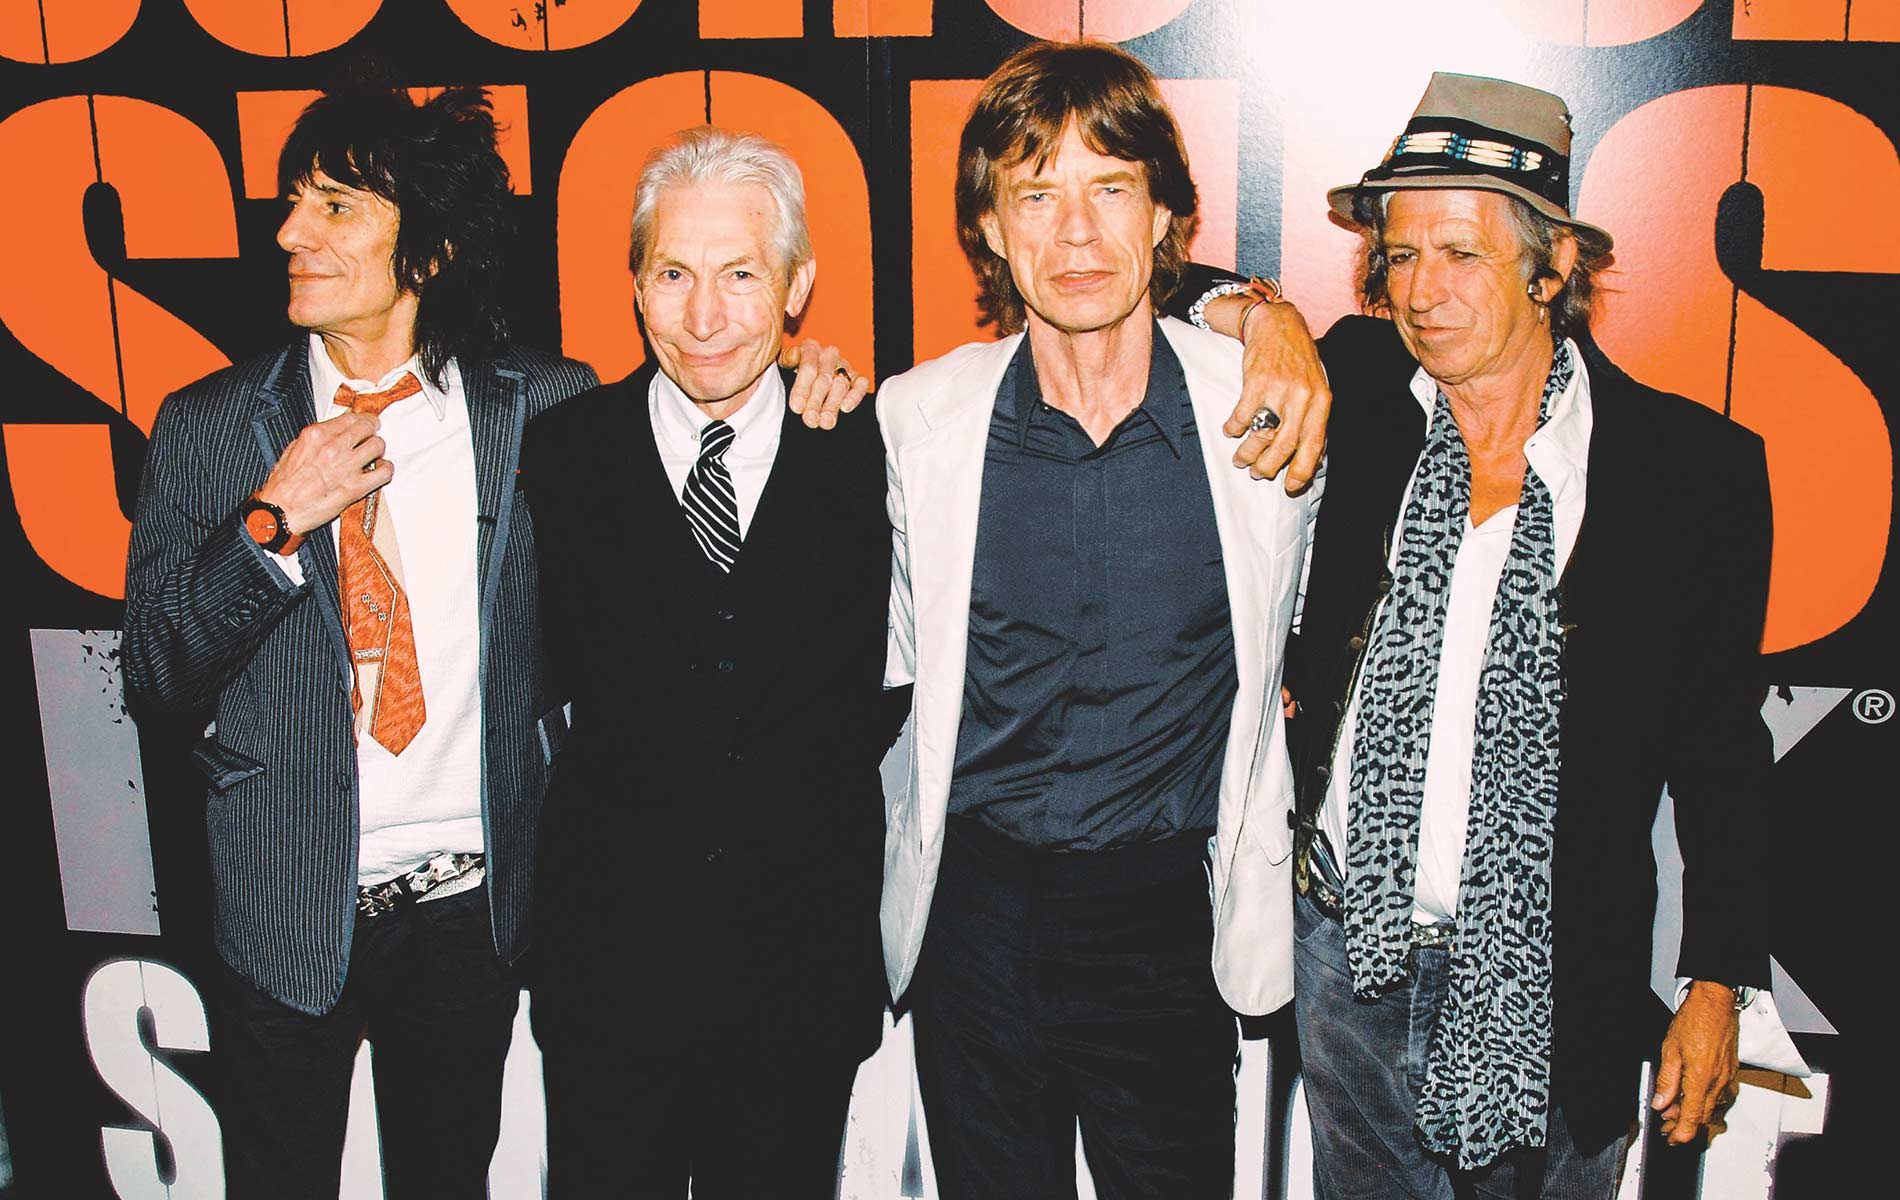 The Rolling Stones' Ronnie Wood, Charlie Watts, Mick Jagger, and Keith Richards at Clearview's Ziegfeld Theater in New York in March of 2008